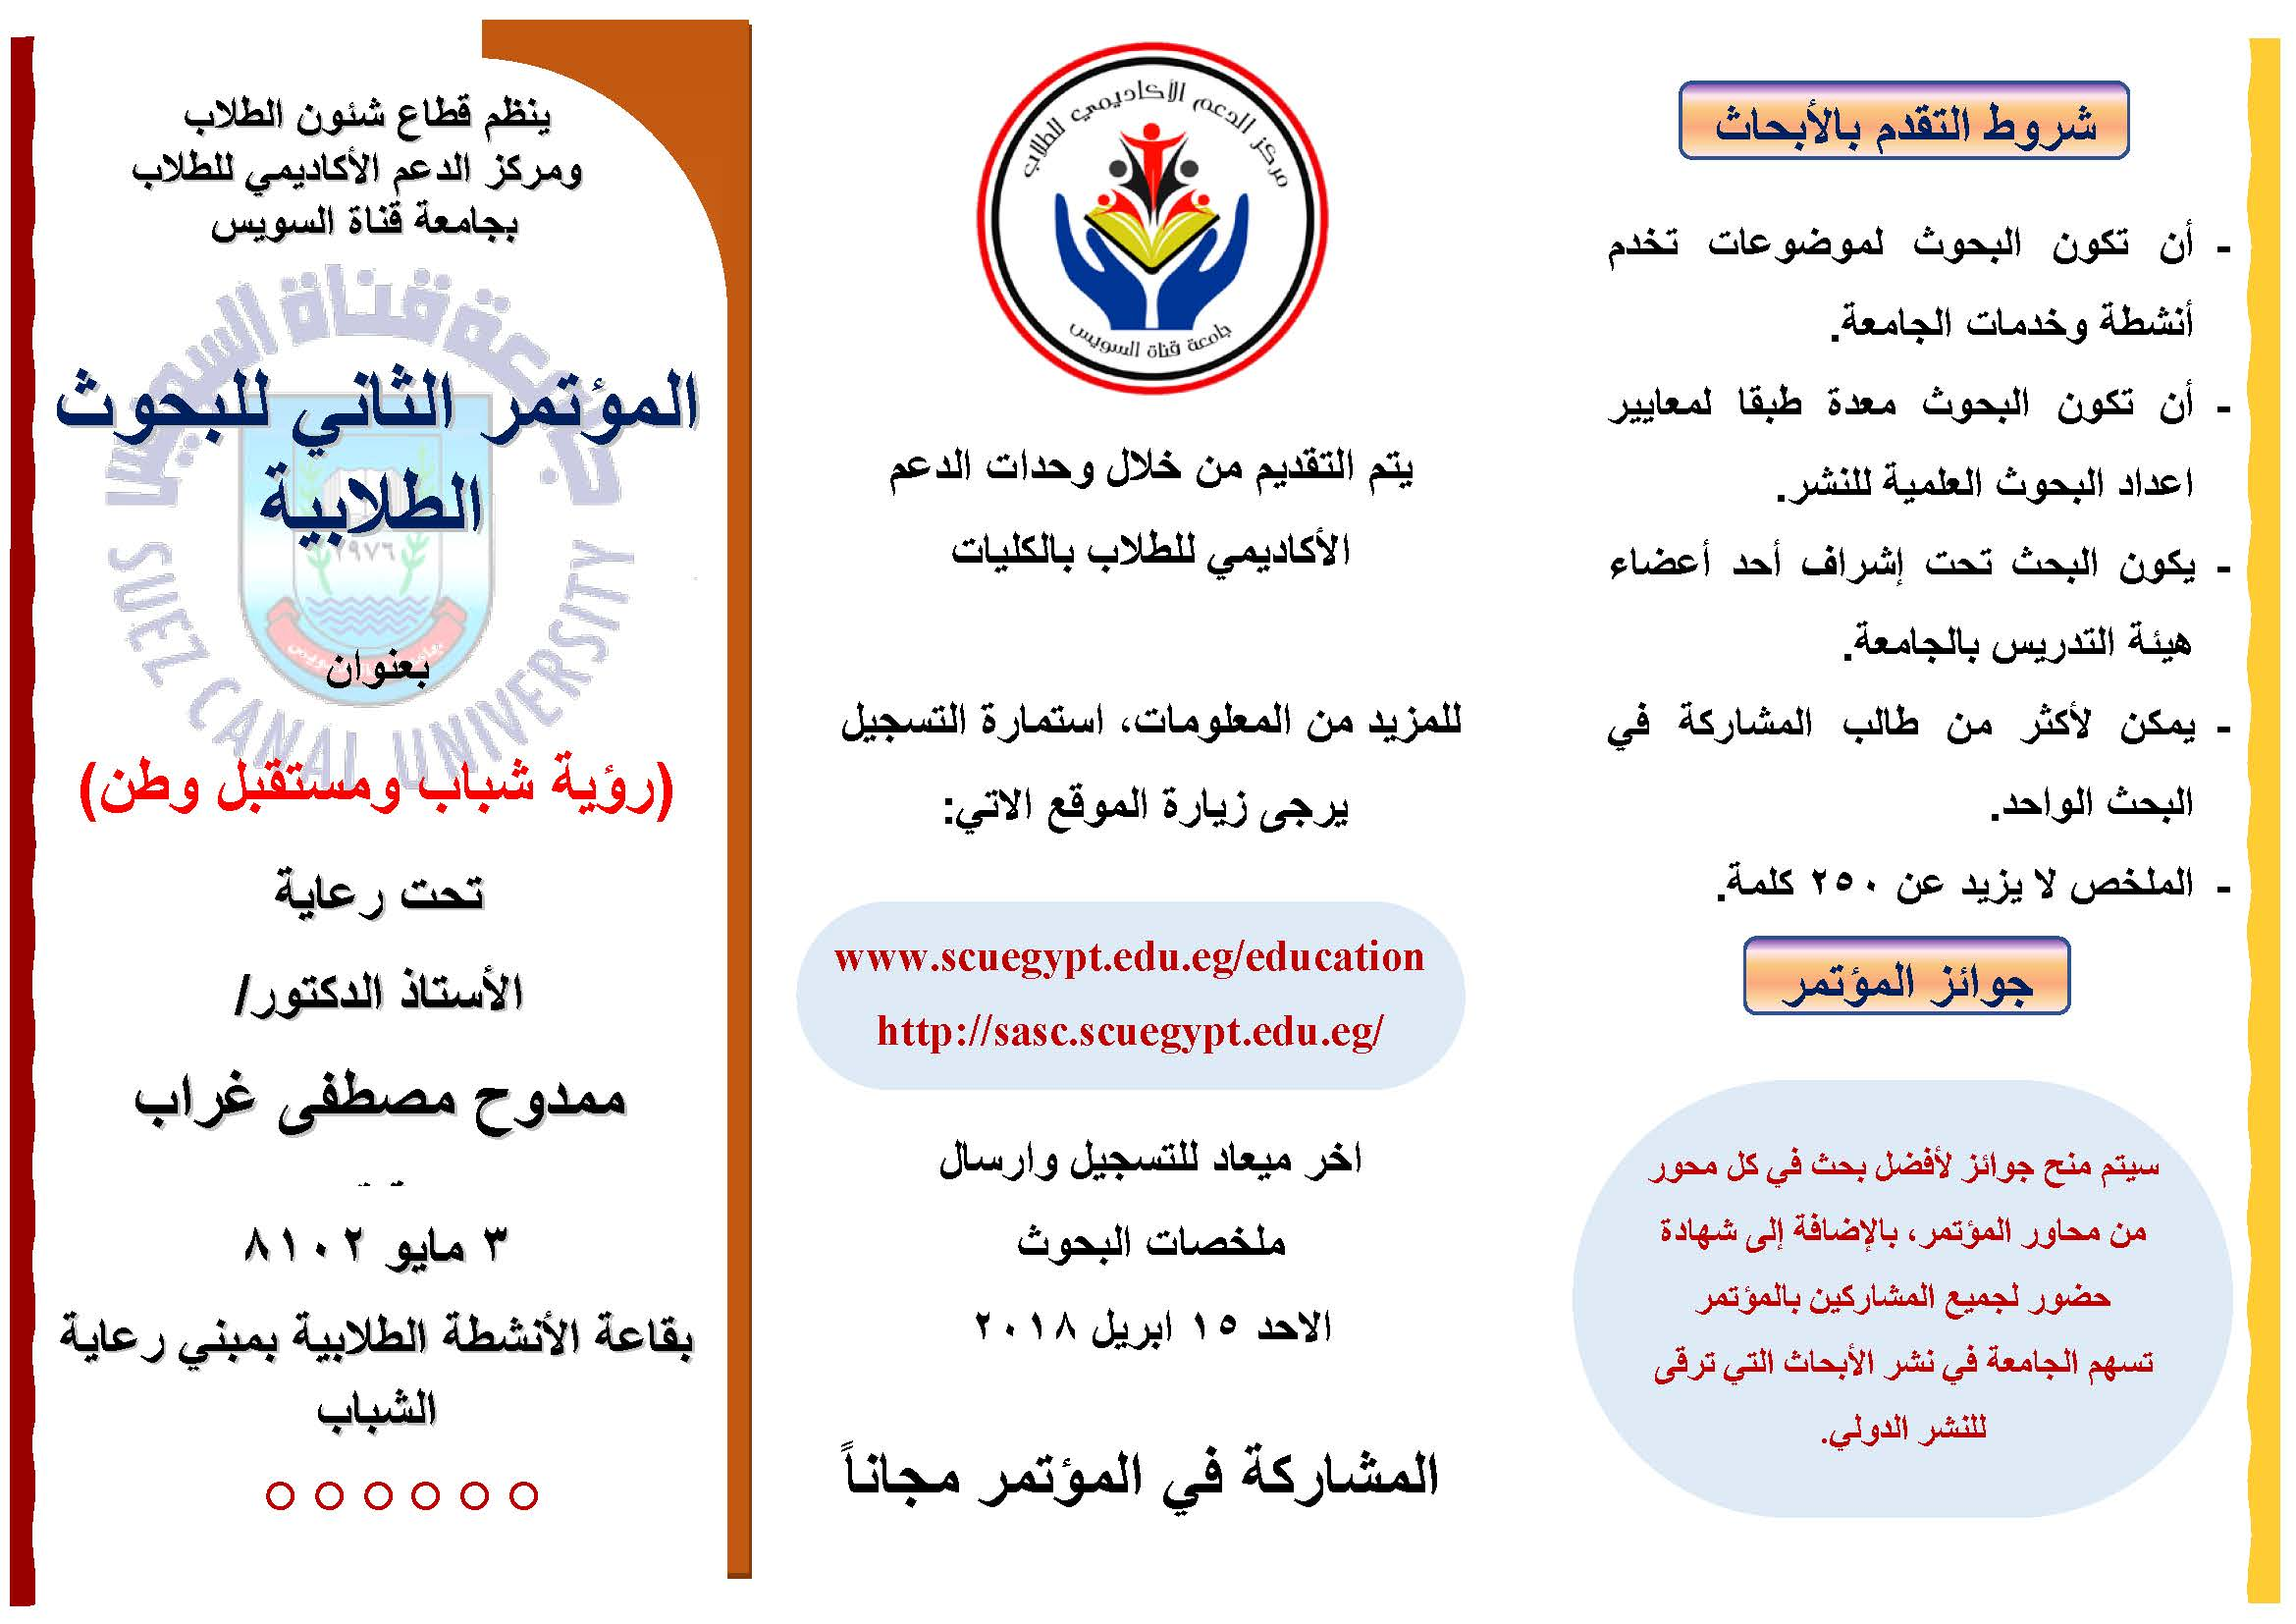 The 2nd conference of student research at Suez Canal University